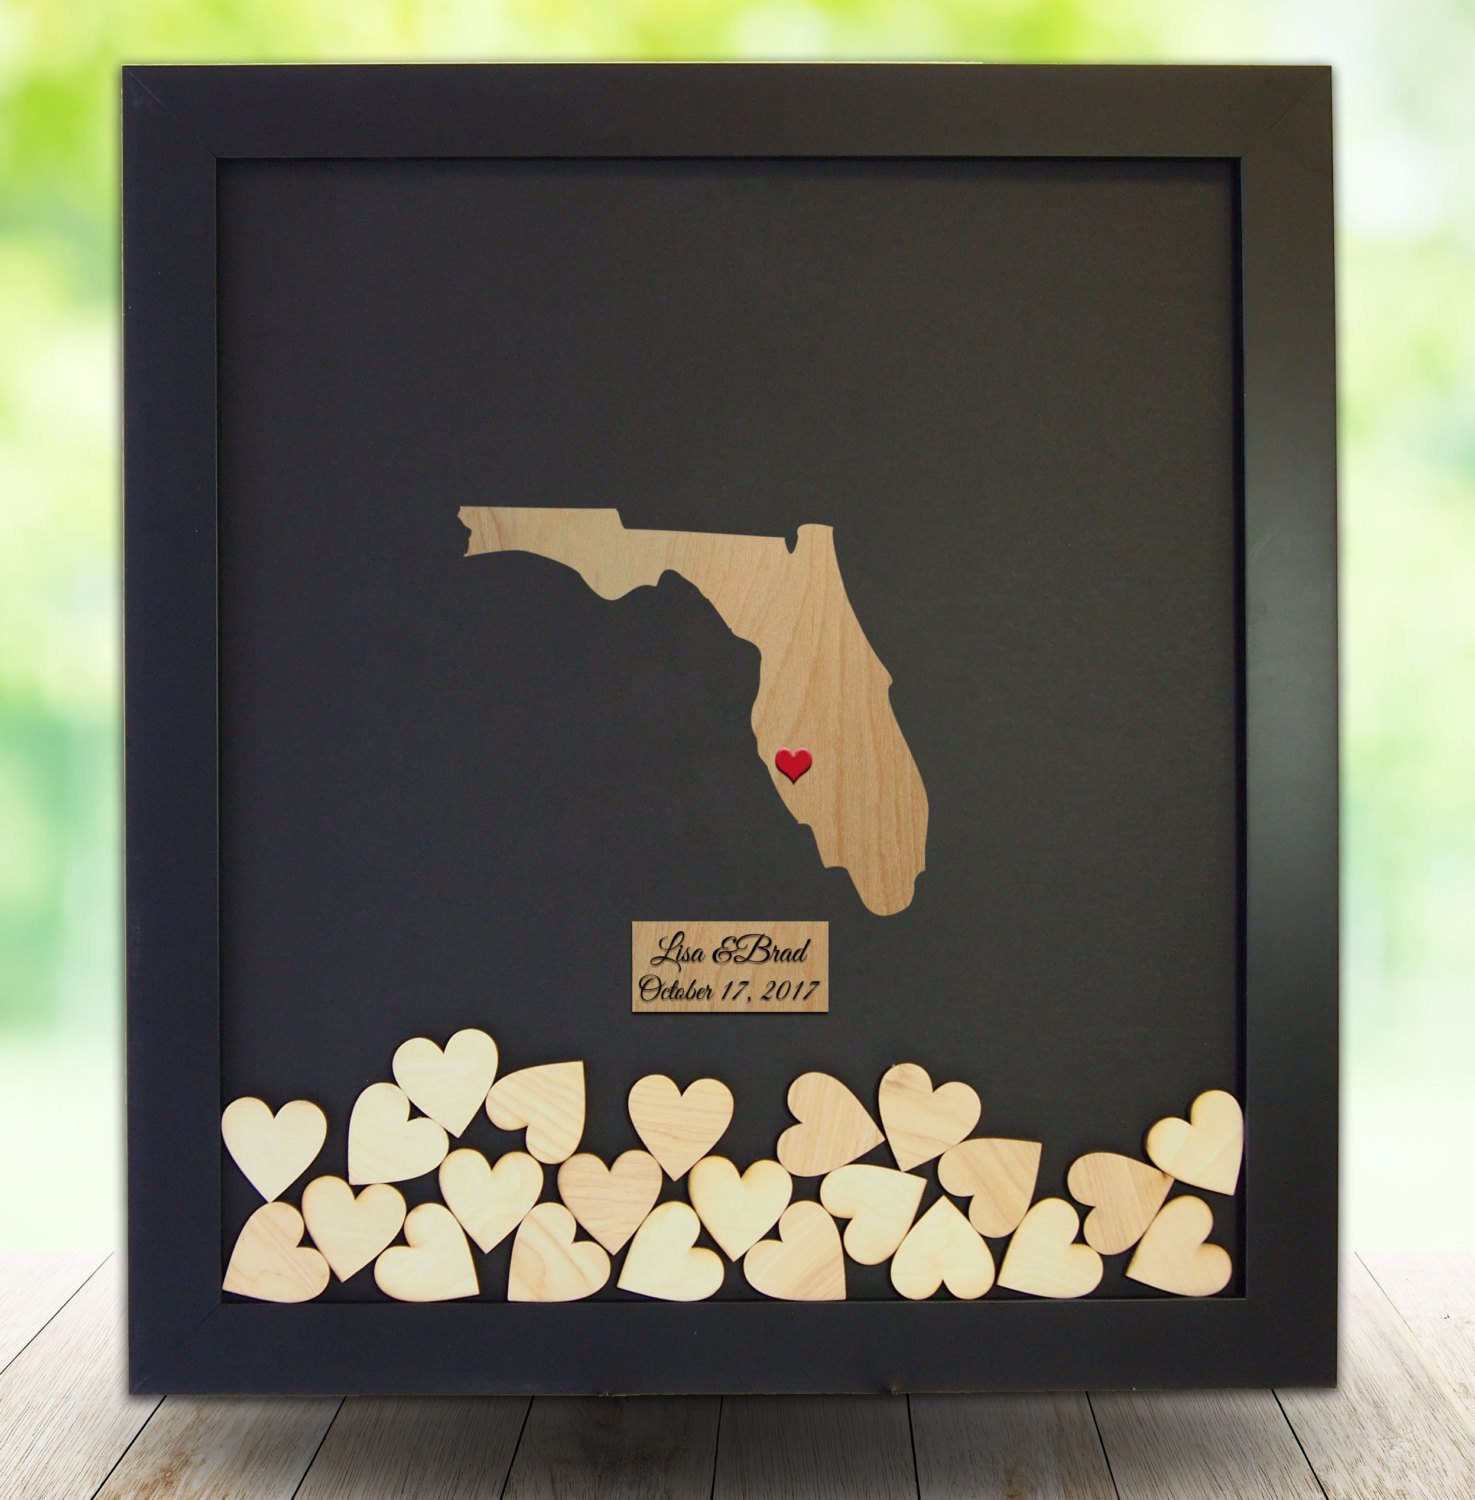 Teisyouhu Florida State Wooden Hearts Decorative Wedding Guest Book Rustic Drop Top Frame Guestbook Sign Name Date Engraved 12 x 14 inch with 120 Hearts